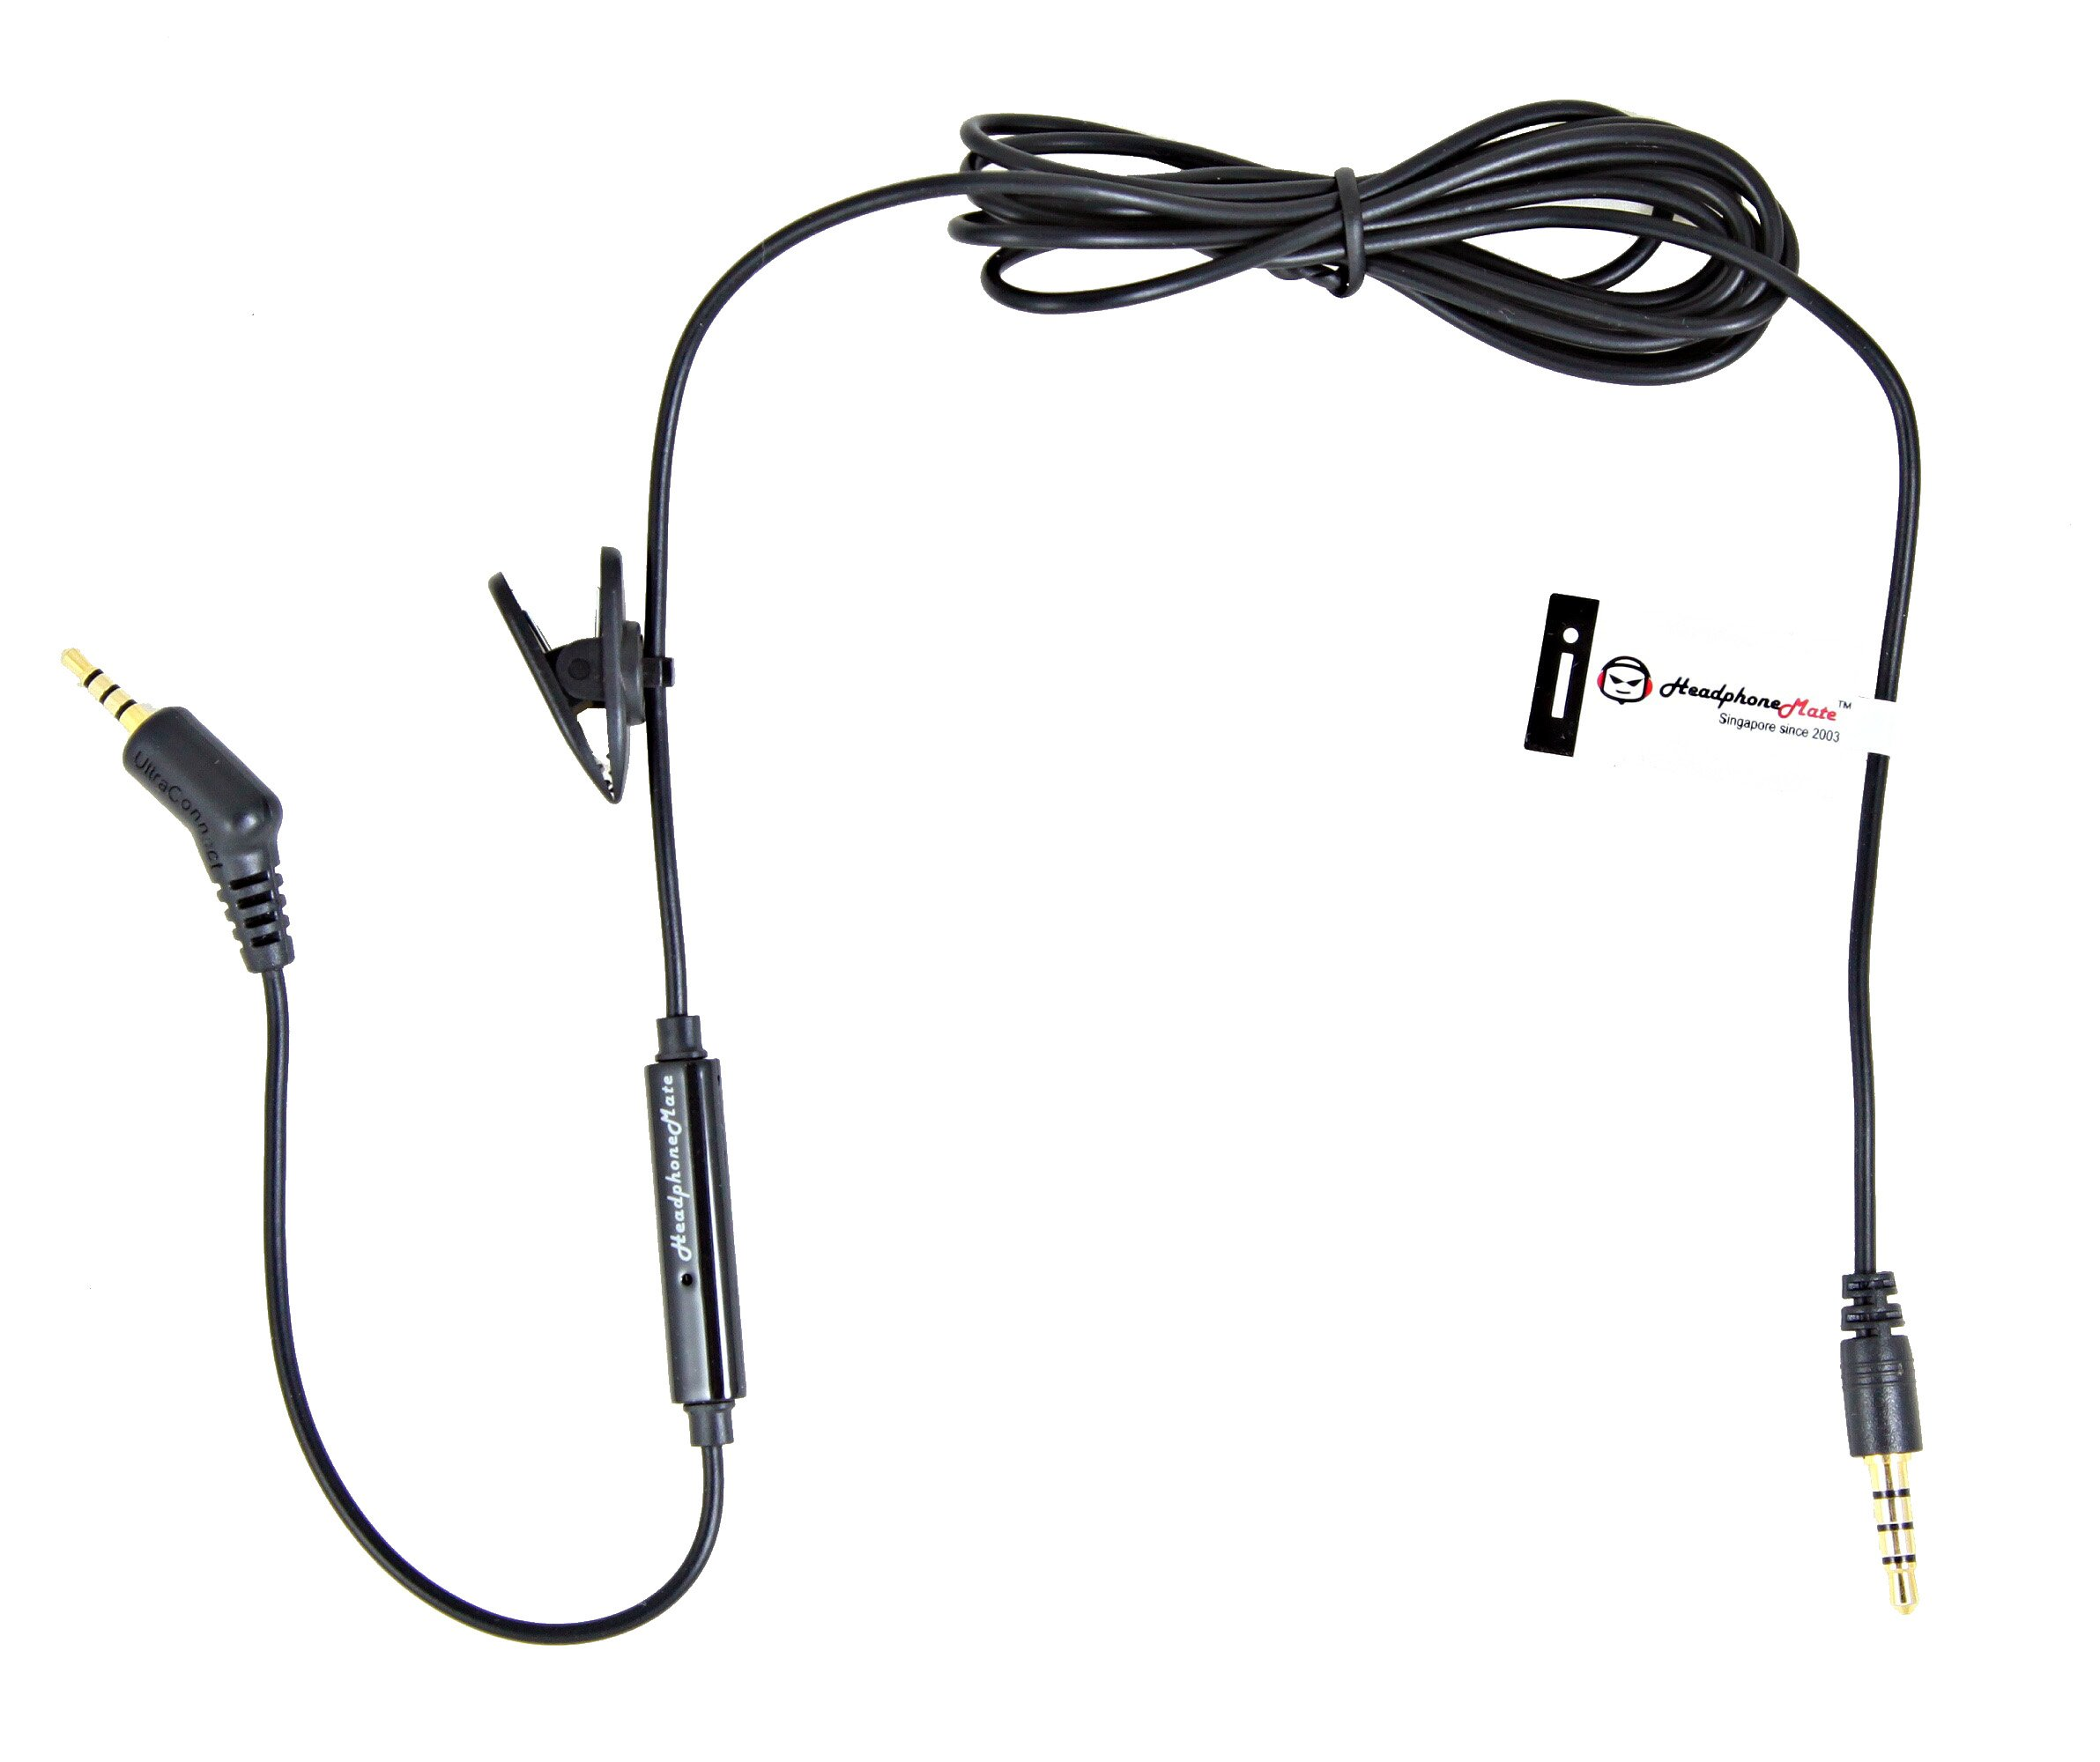 HeadphoneMate Inline Remote and Microphone Cable for Bose QC3 Headphones and iPhone